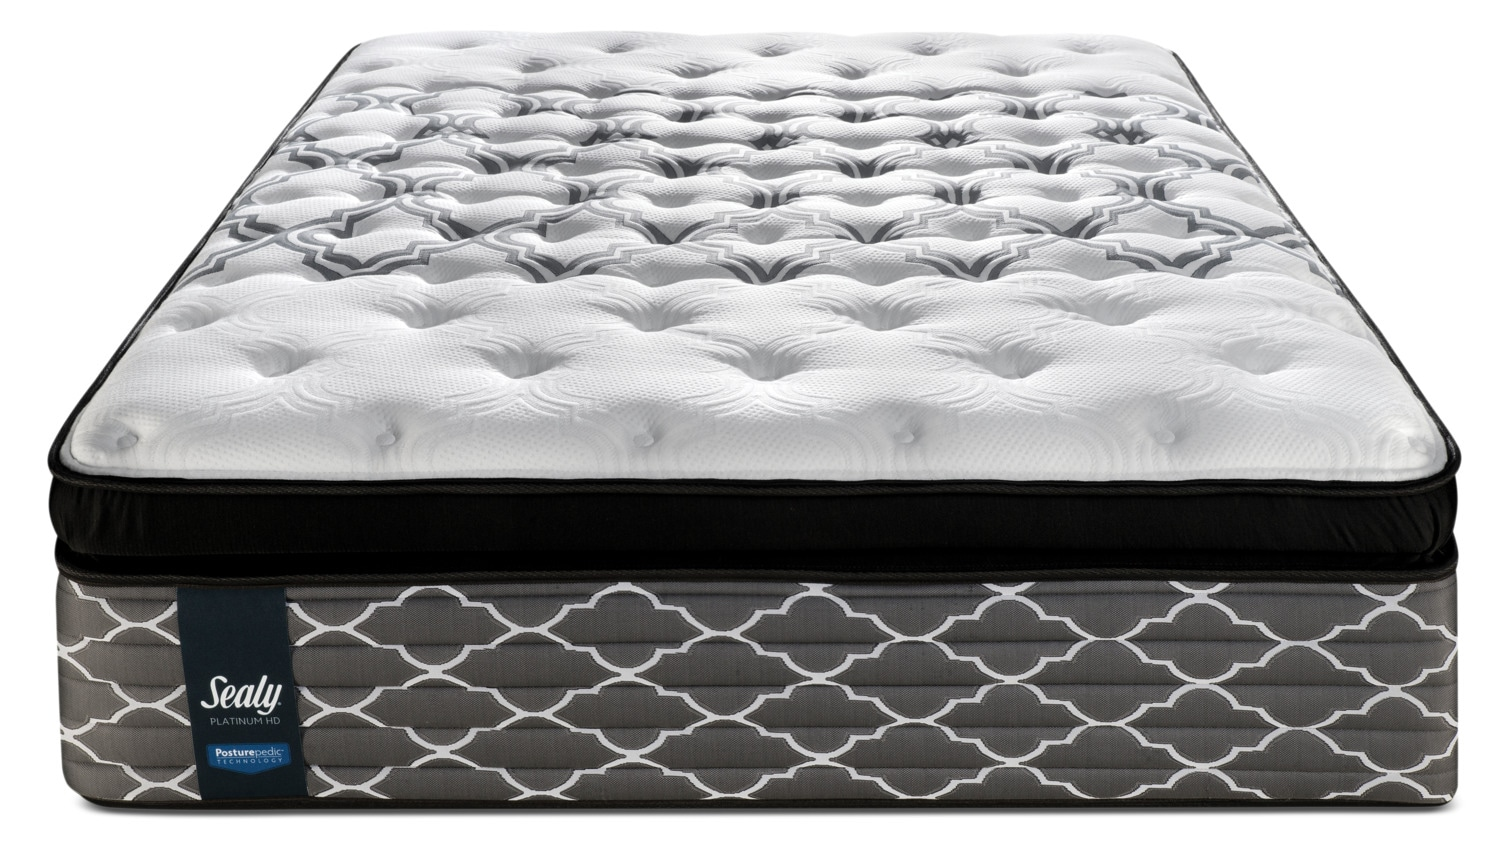 sealy endless night hybride semi ferme matelas tr s grand meubles l on. Black Bedroom Furniture Sets. Home Design Ideas